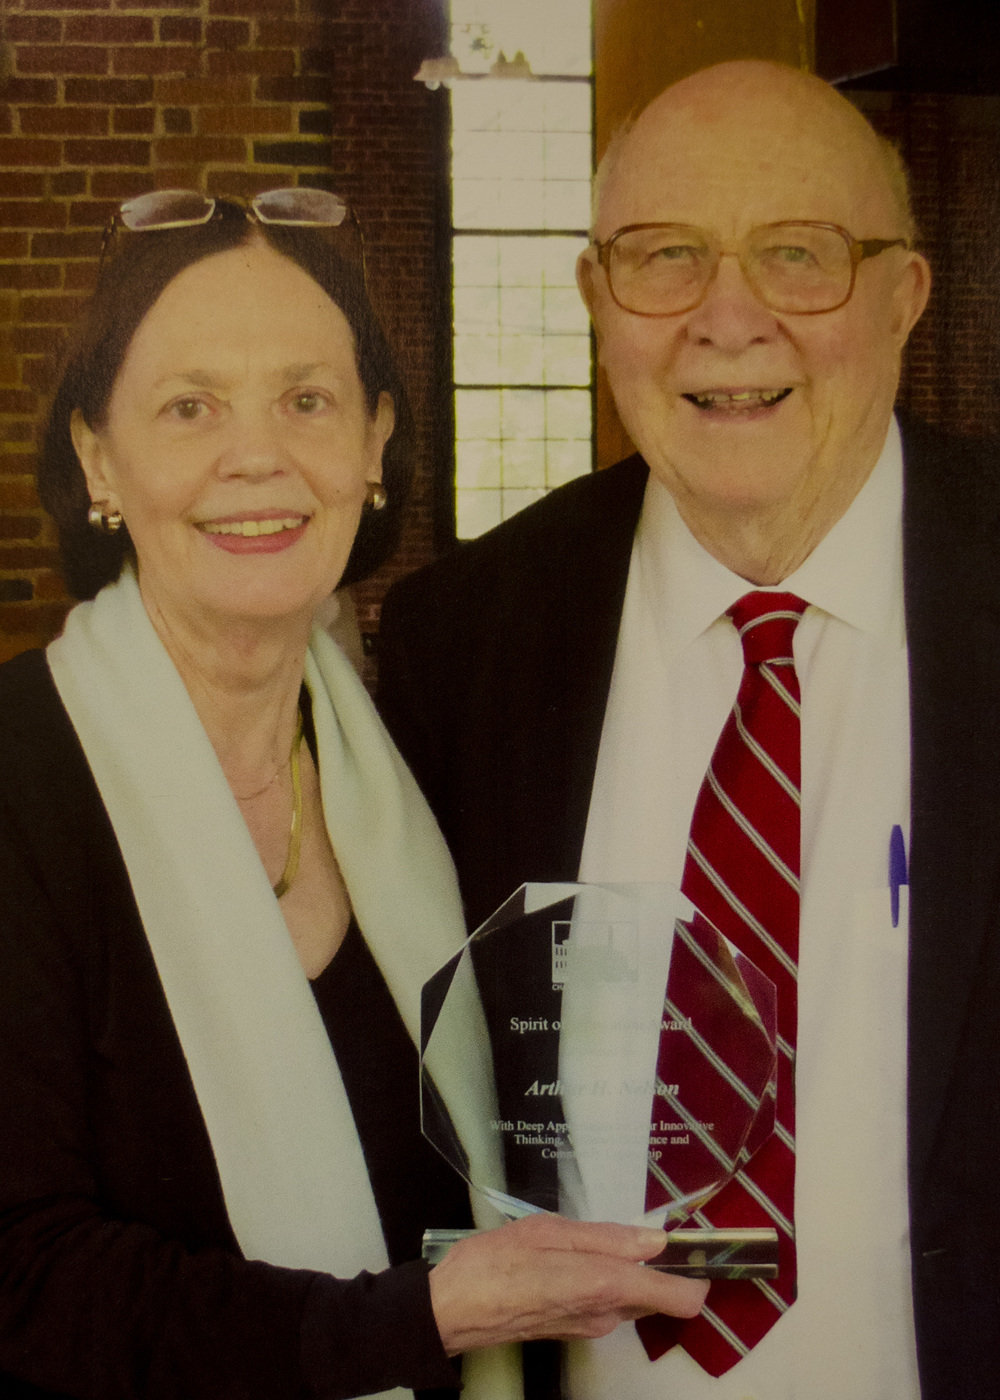 Arthur H. Nelson, pictured here with Marcia M. Folsom, President of our Board of Trustees on the day Mr. Nelson was presented with the Museum's inaugural Spirit of Innovation Award in June 2014.